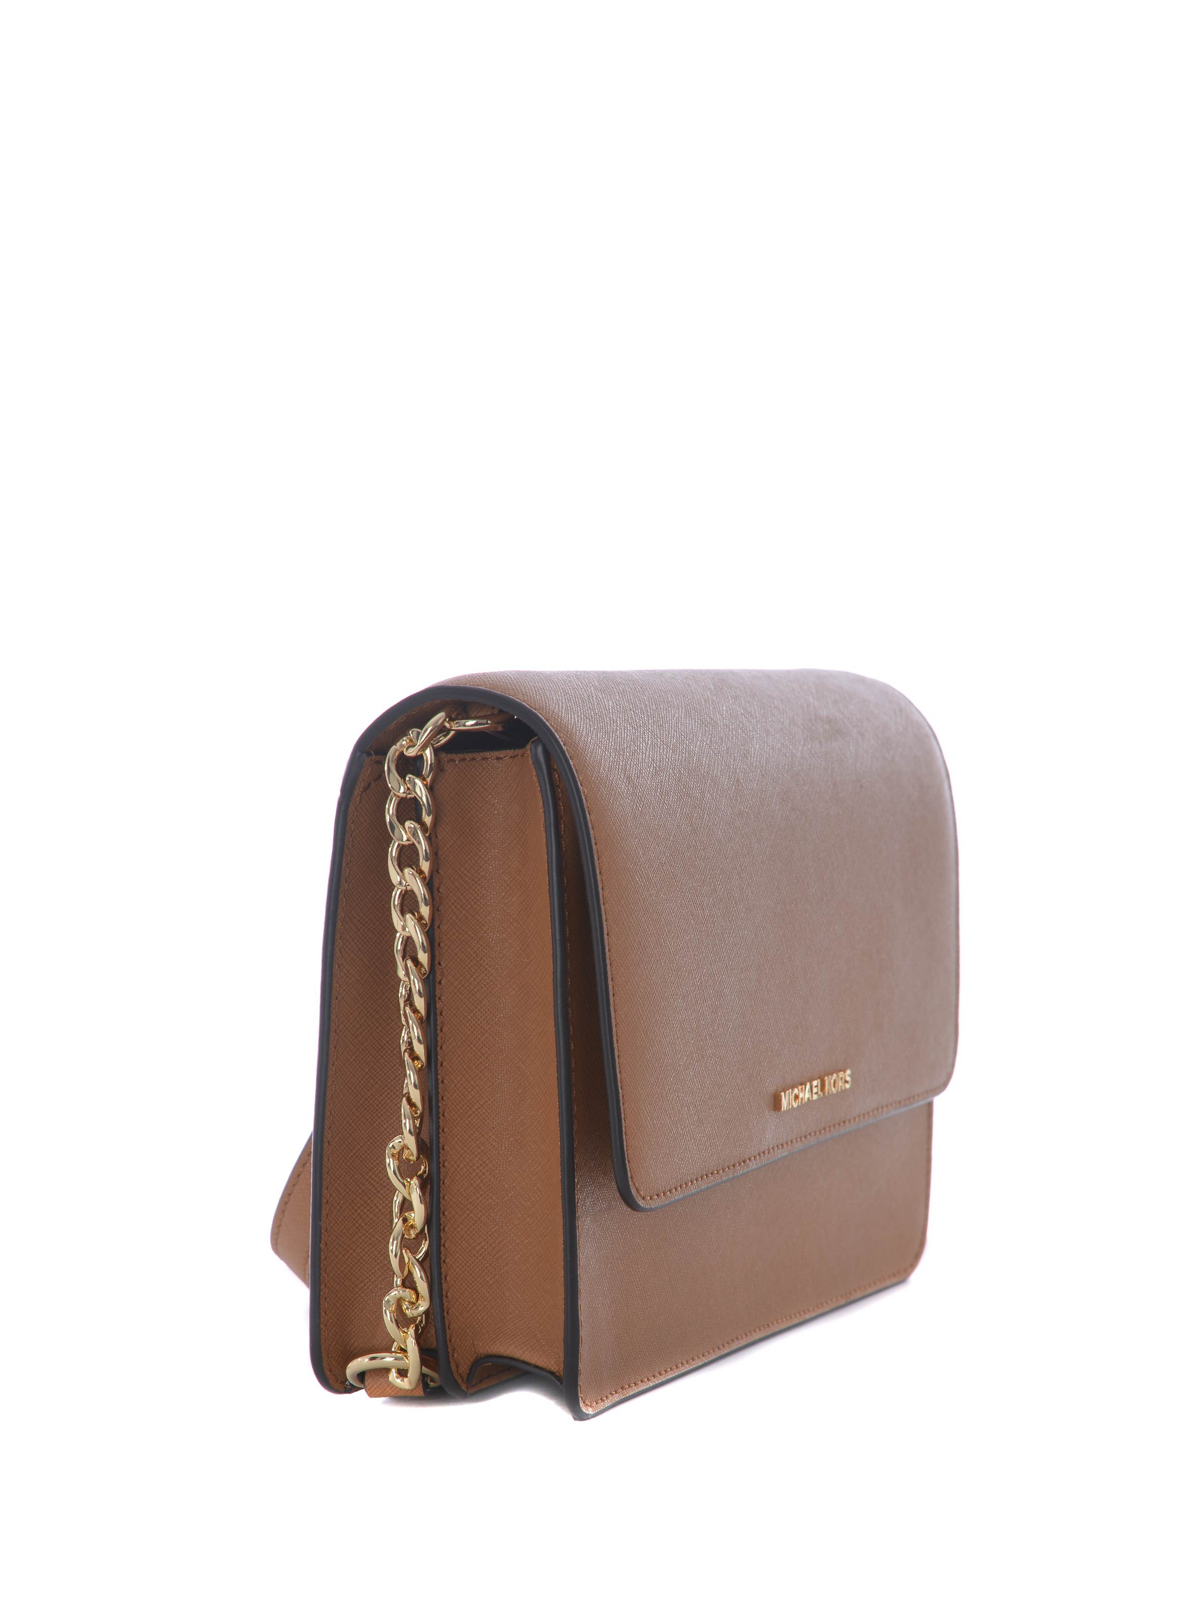 7343bc5ade81 MICHAEL KORS: cross body bags online - Daniela large brown crossbody bag